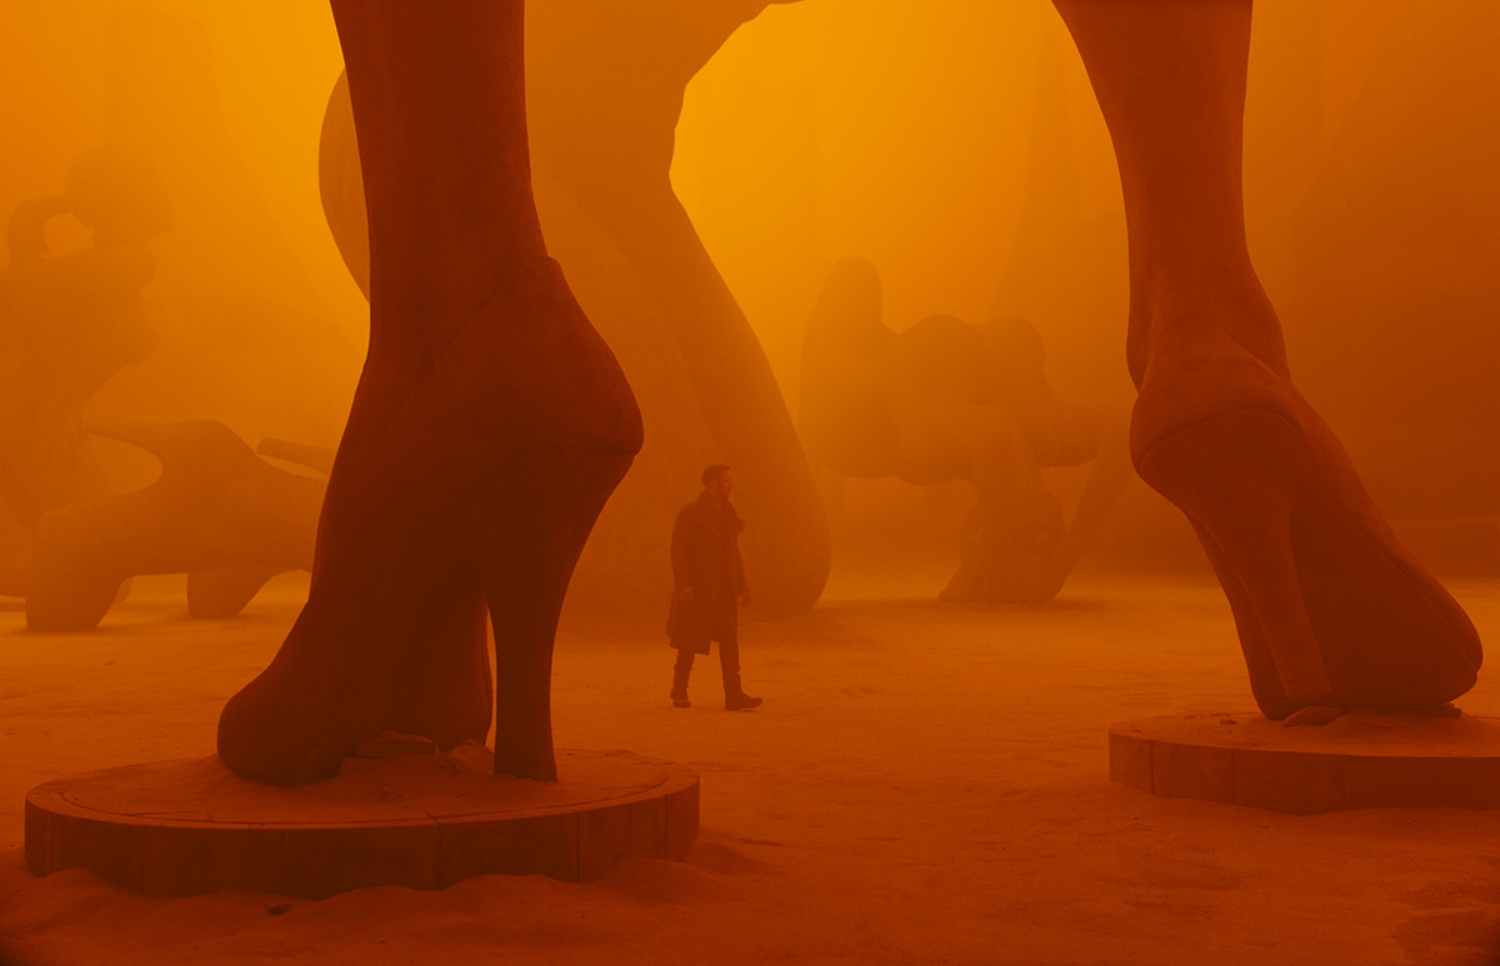 'Blade Runner 2049' utilizes color to communicate place and space.